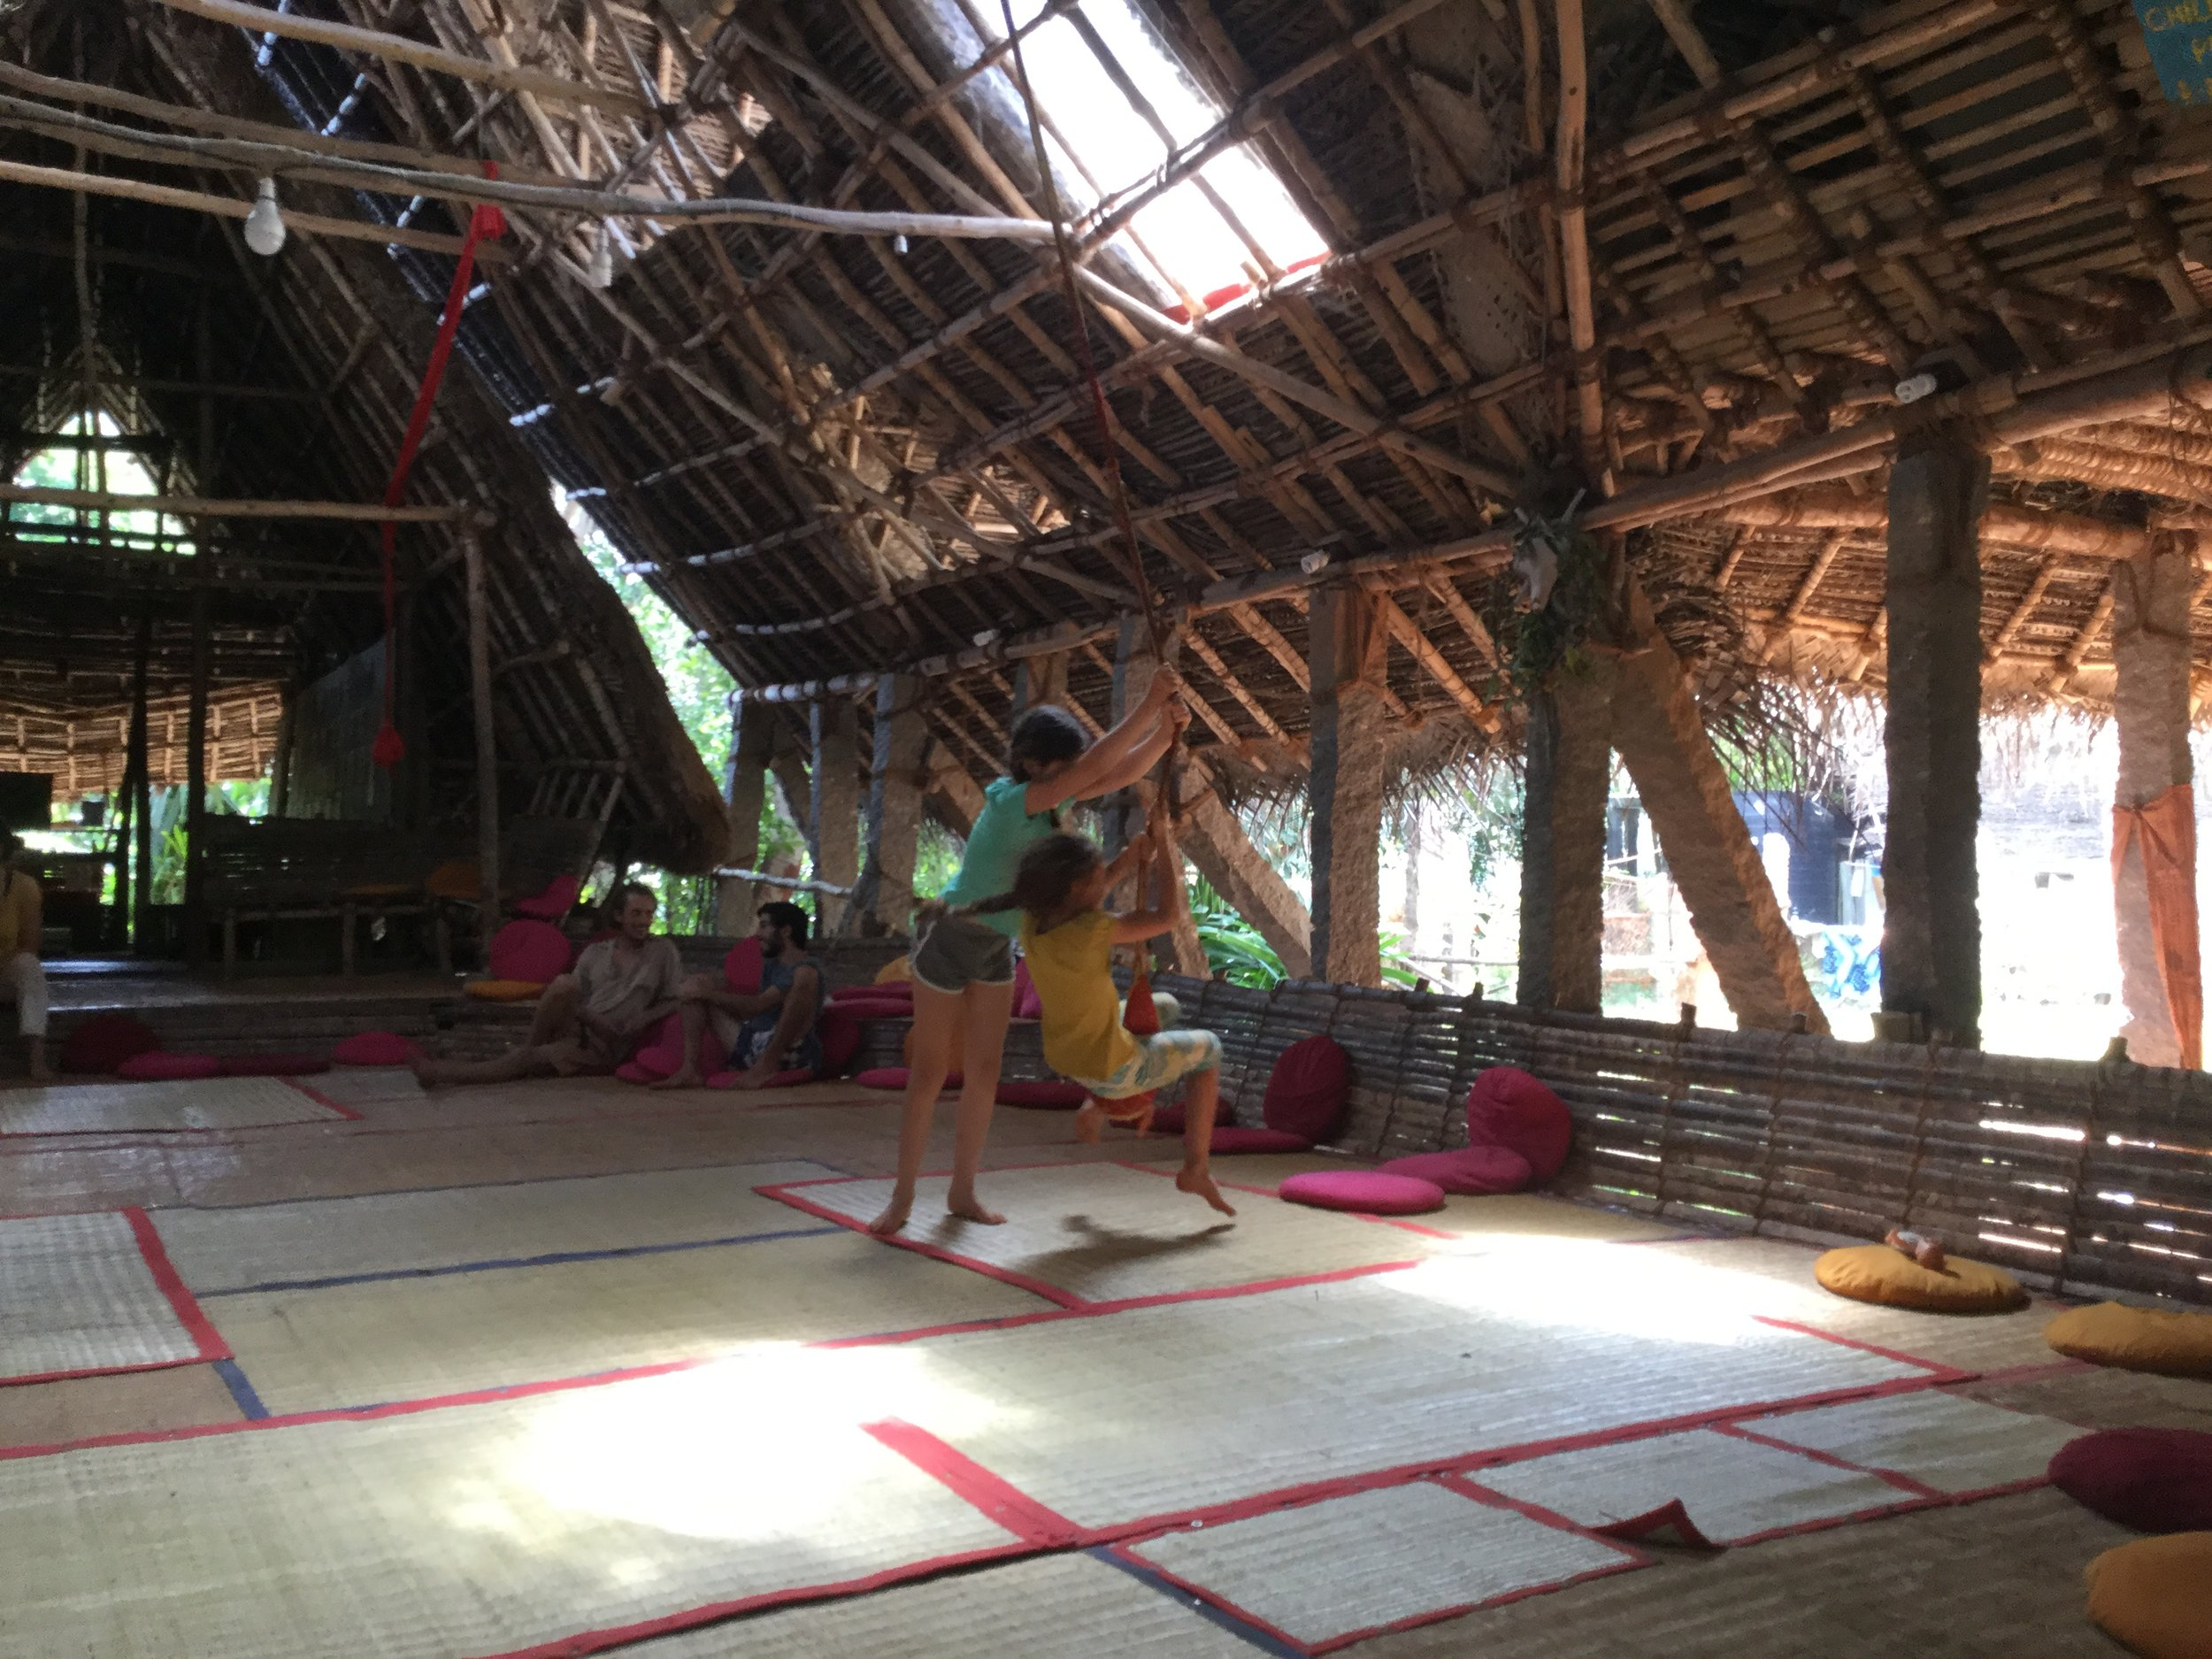 Sadhana Forest main hut. Lili and Shalev are having fun with the ropes.